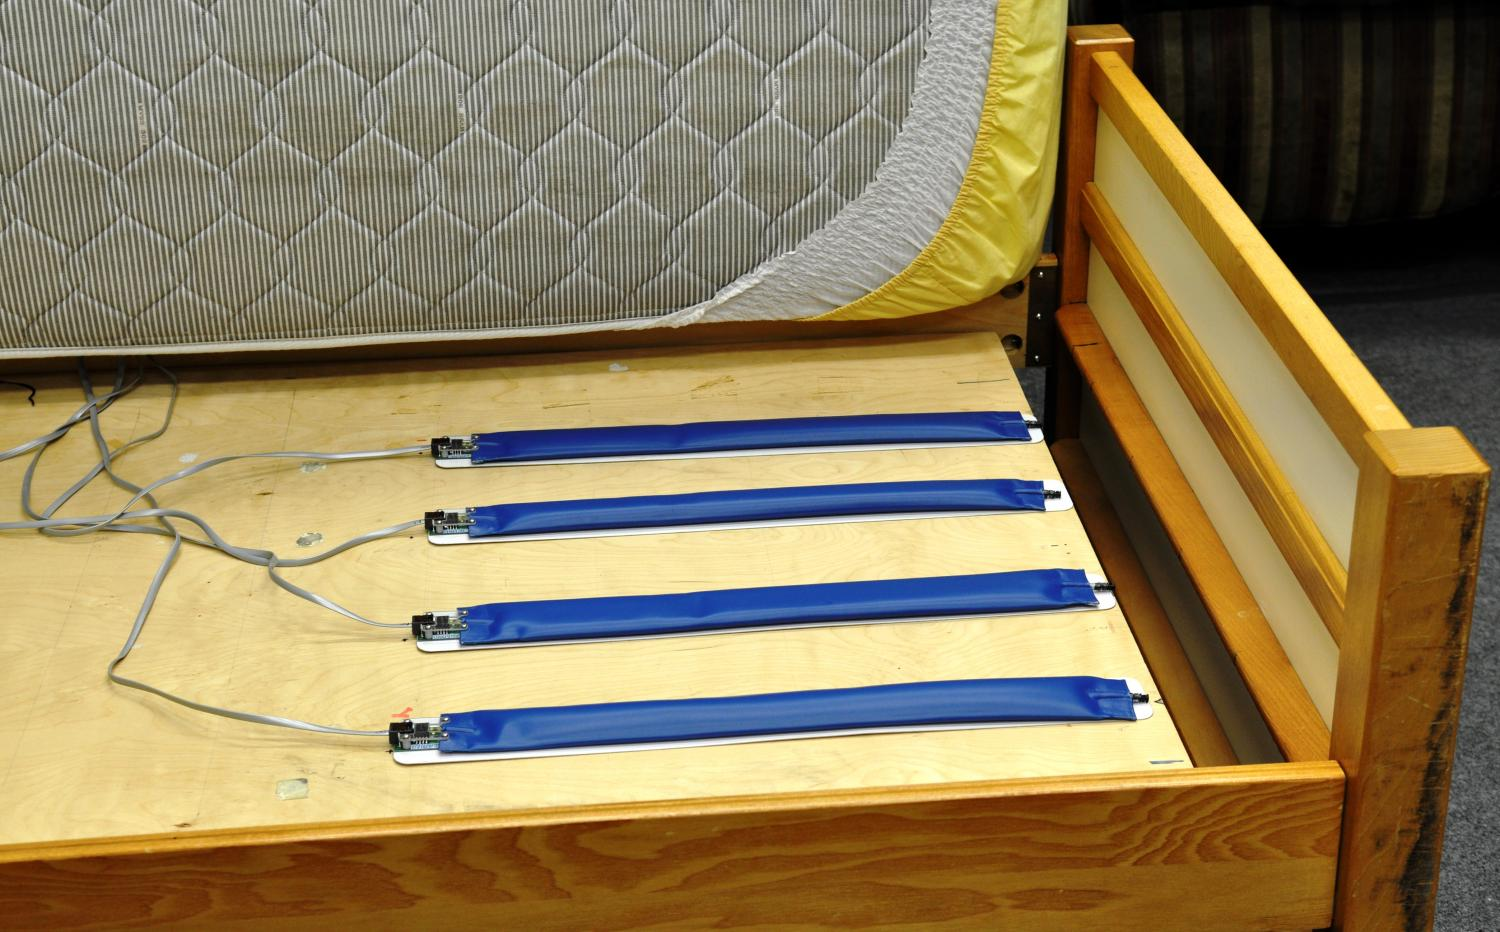 Bed sensors help detect problems early